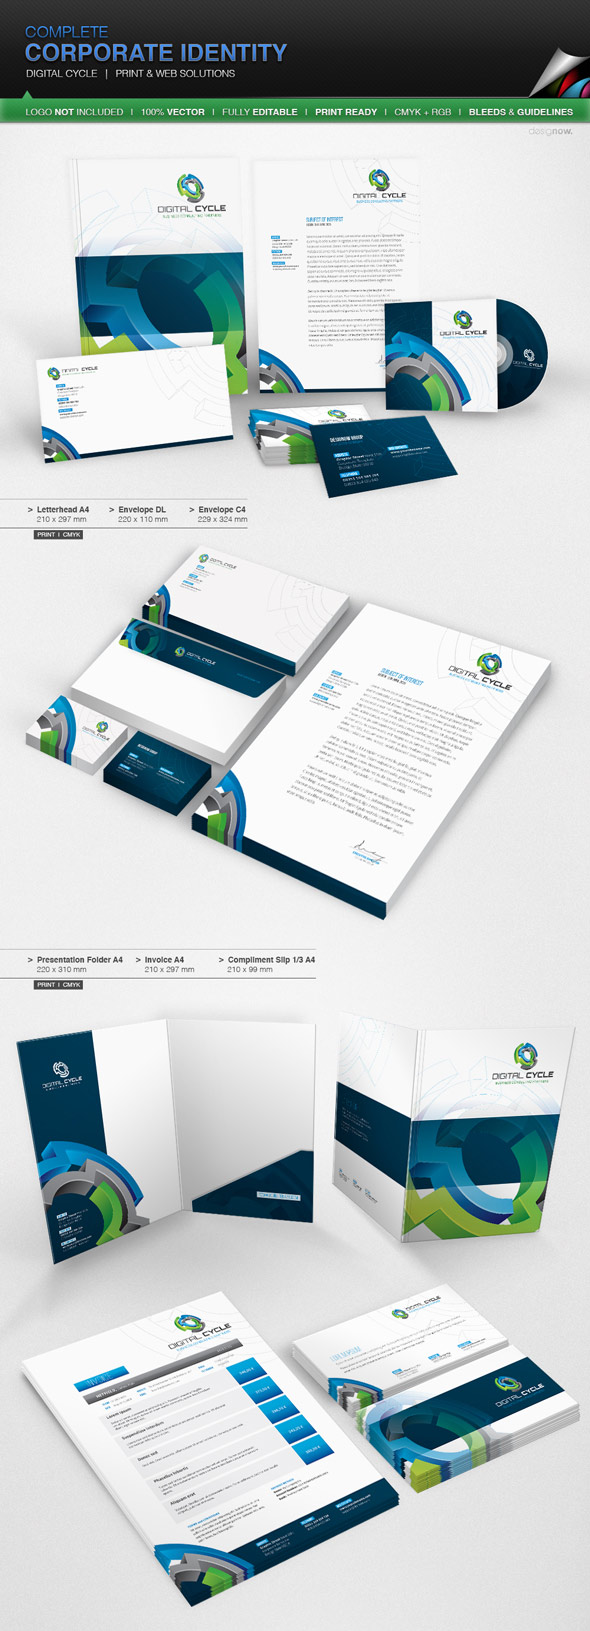 15 corporate brand identity packages—with creative designs, Presentation templates